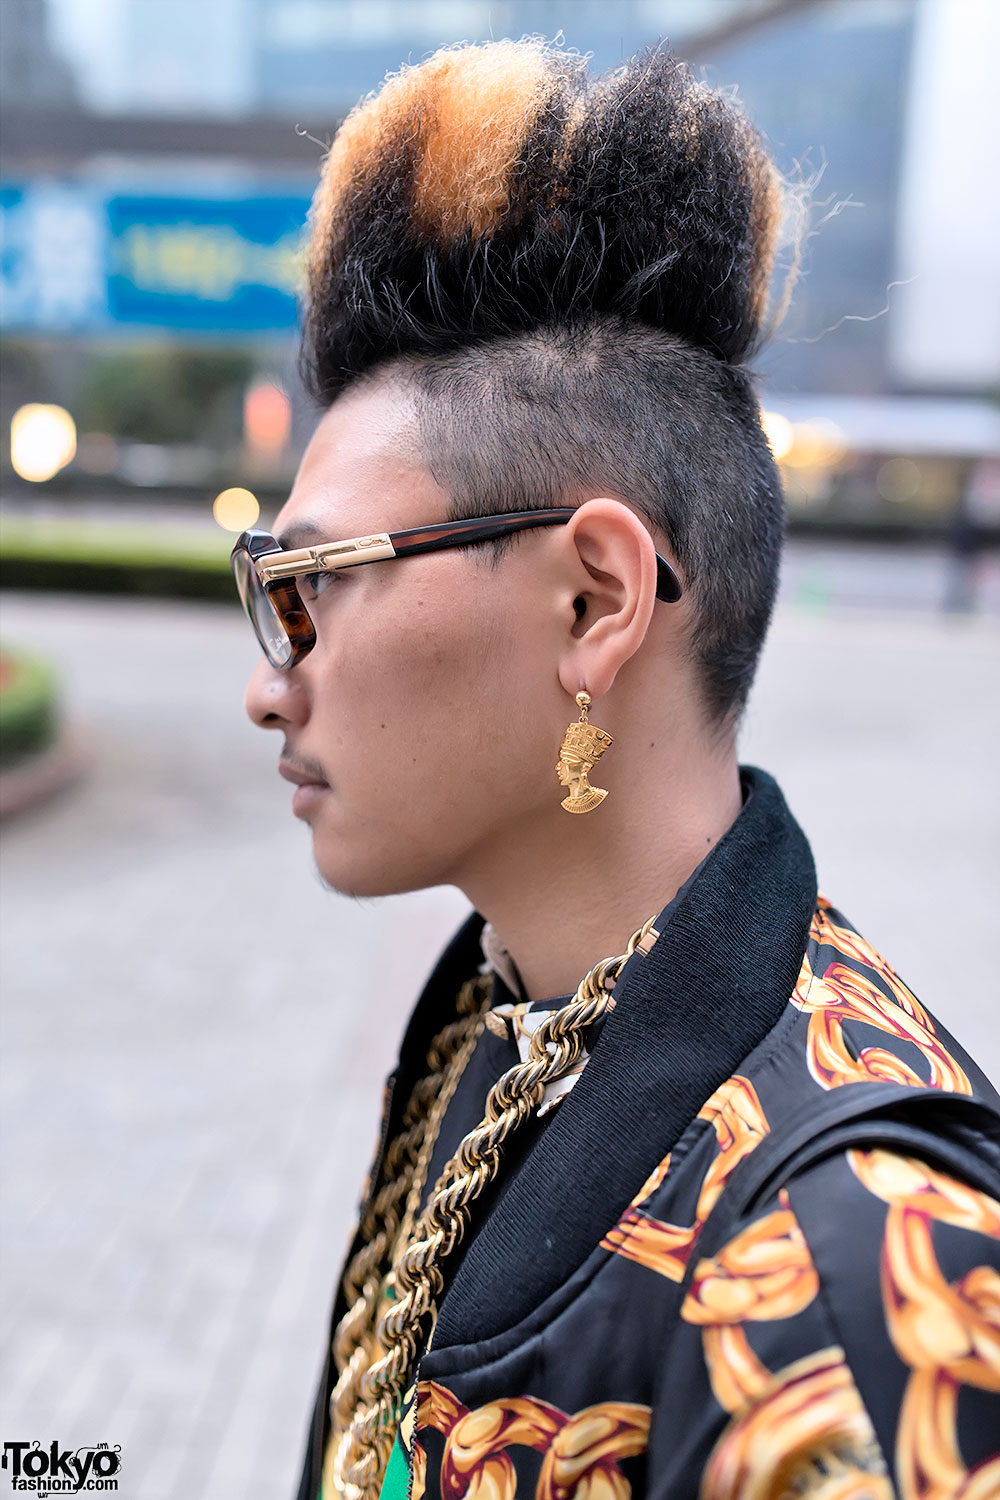 Fine Hi Top Fade Gold Chains Amp 1980S Hip Hop Inspired Street Style Hairstyles For Women Draintrainus